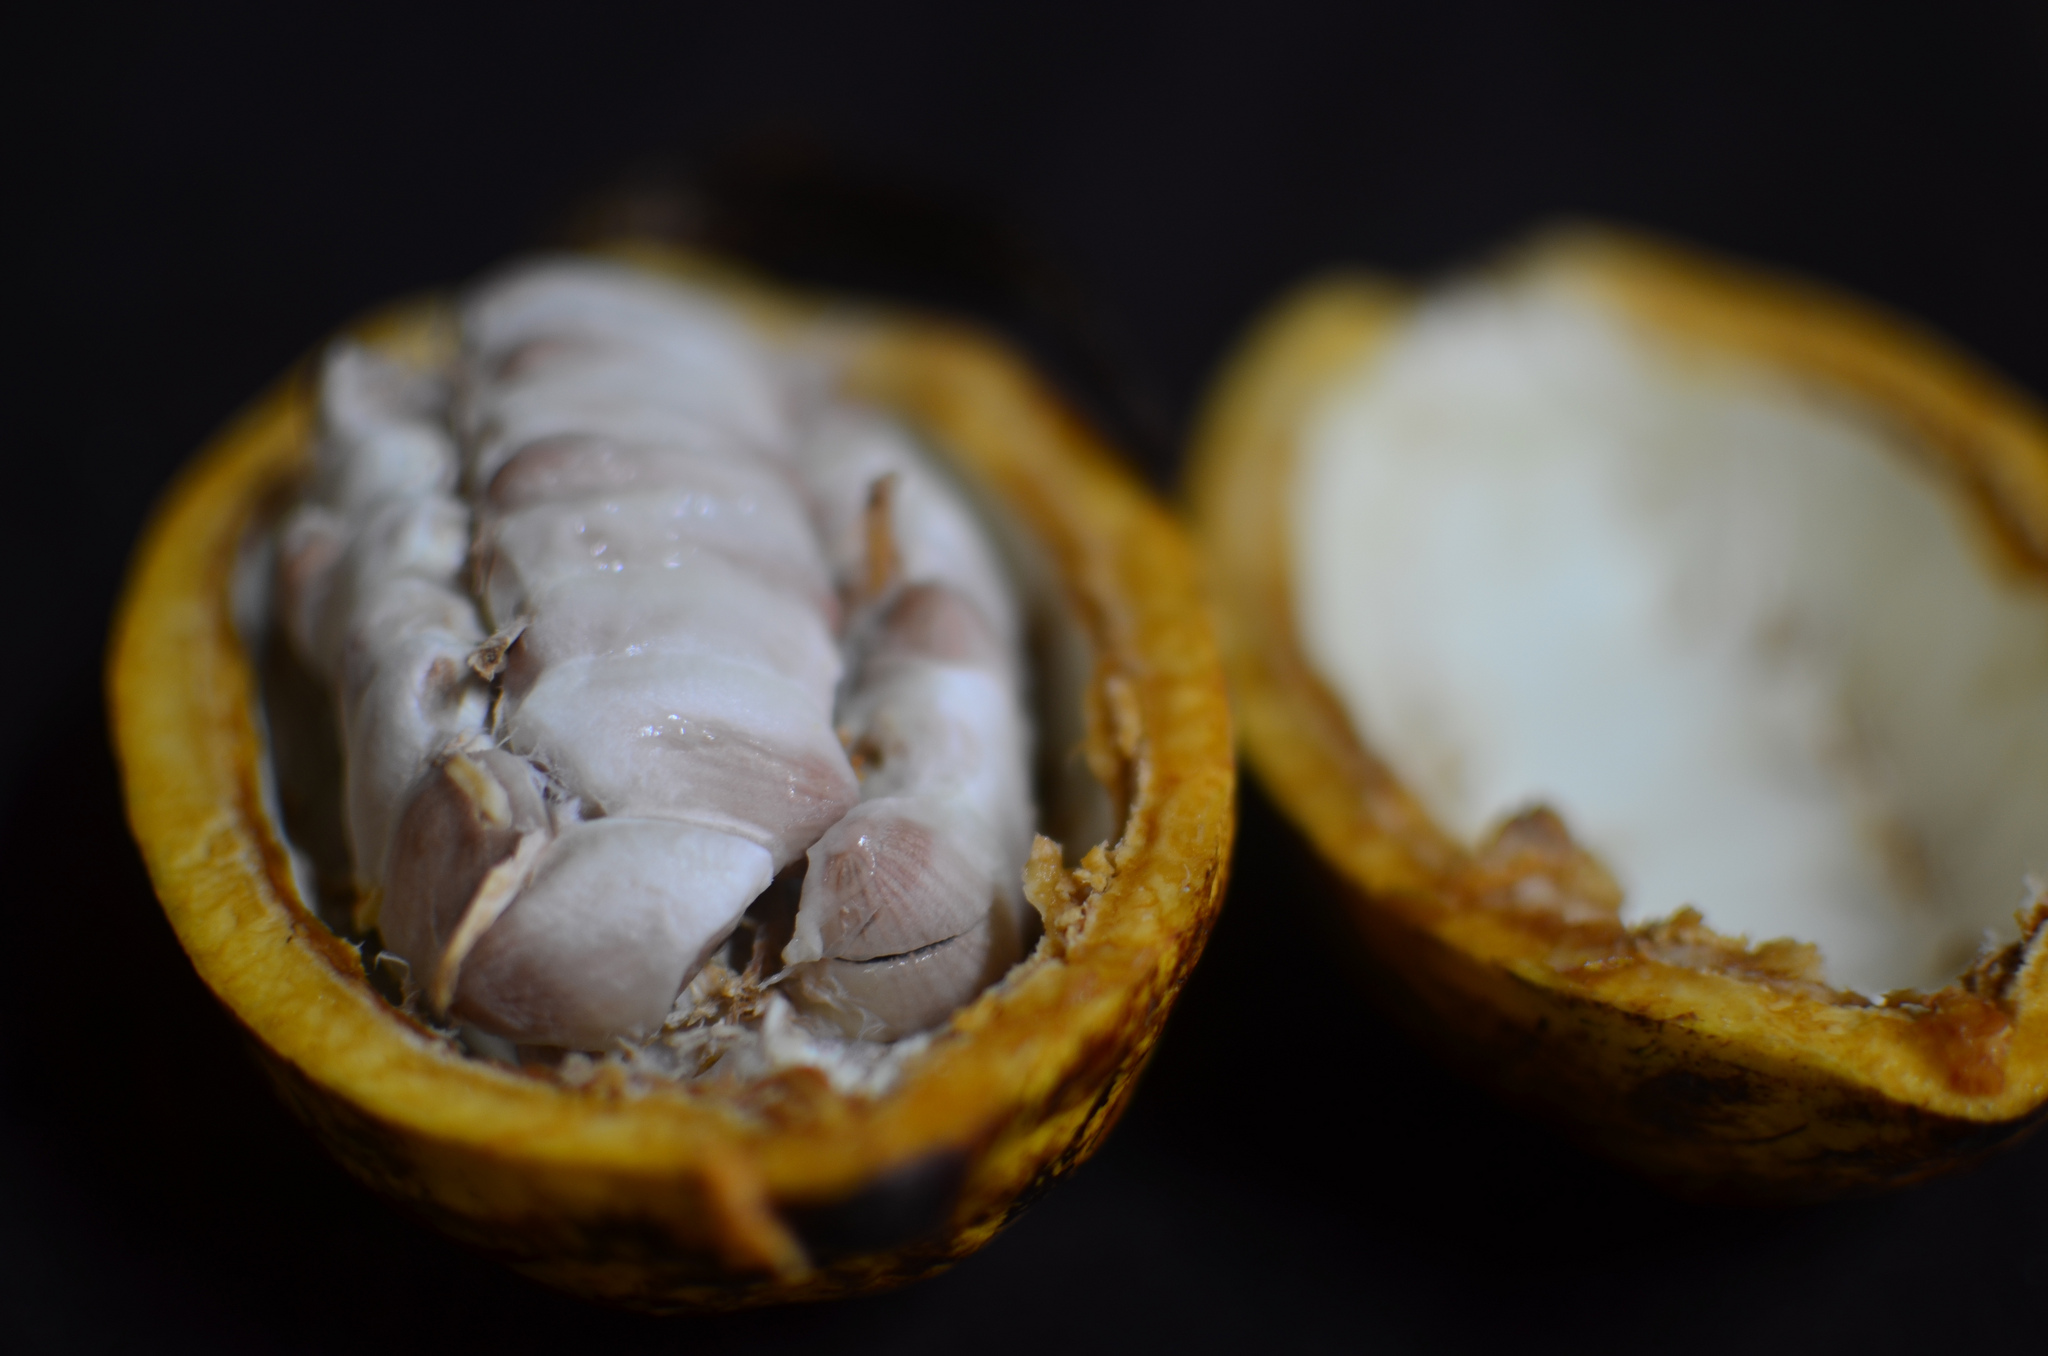 A typical Nigerian cocoa pod containing about 40 beans would produce two 60g bars of dark chocolate. PHOTO: OZOZ SOKOH.